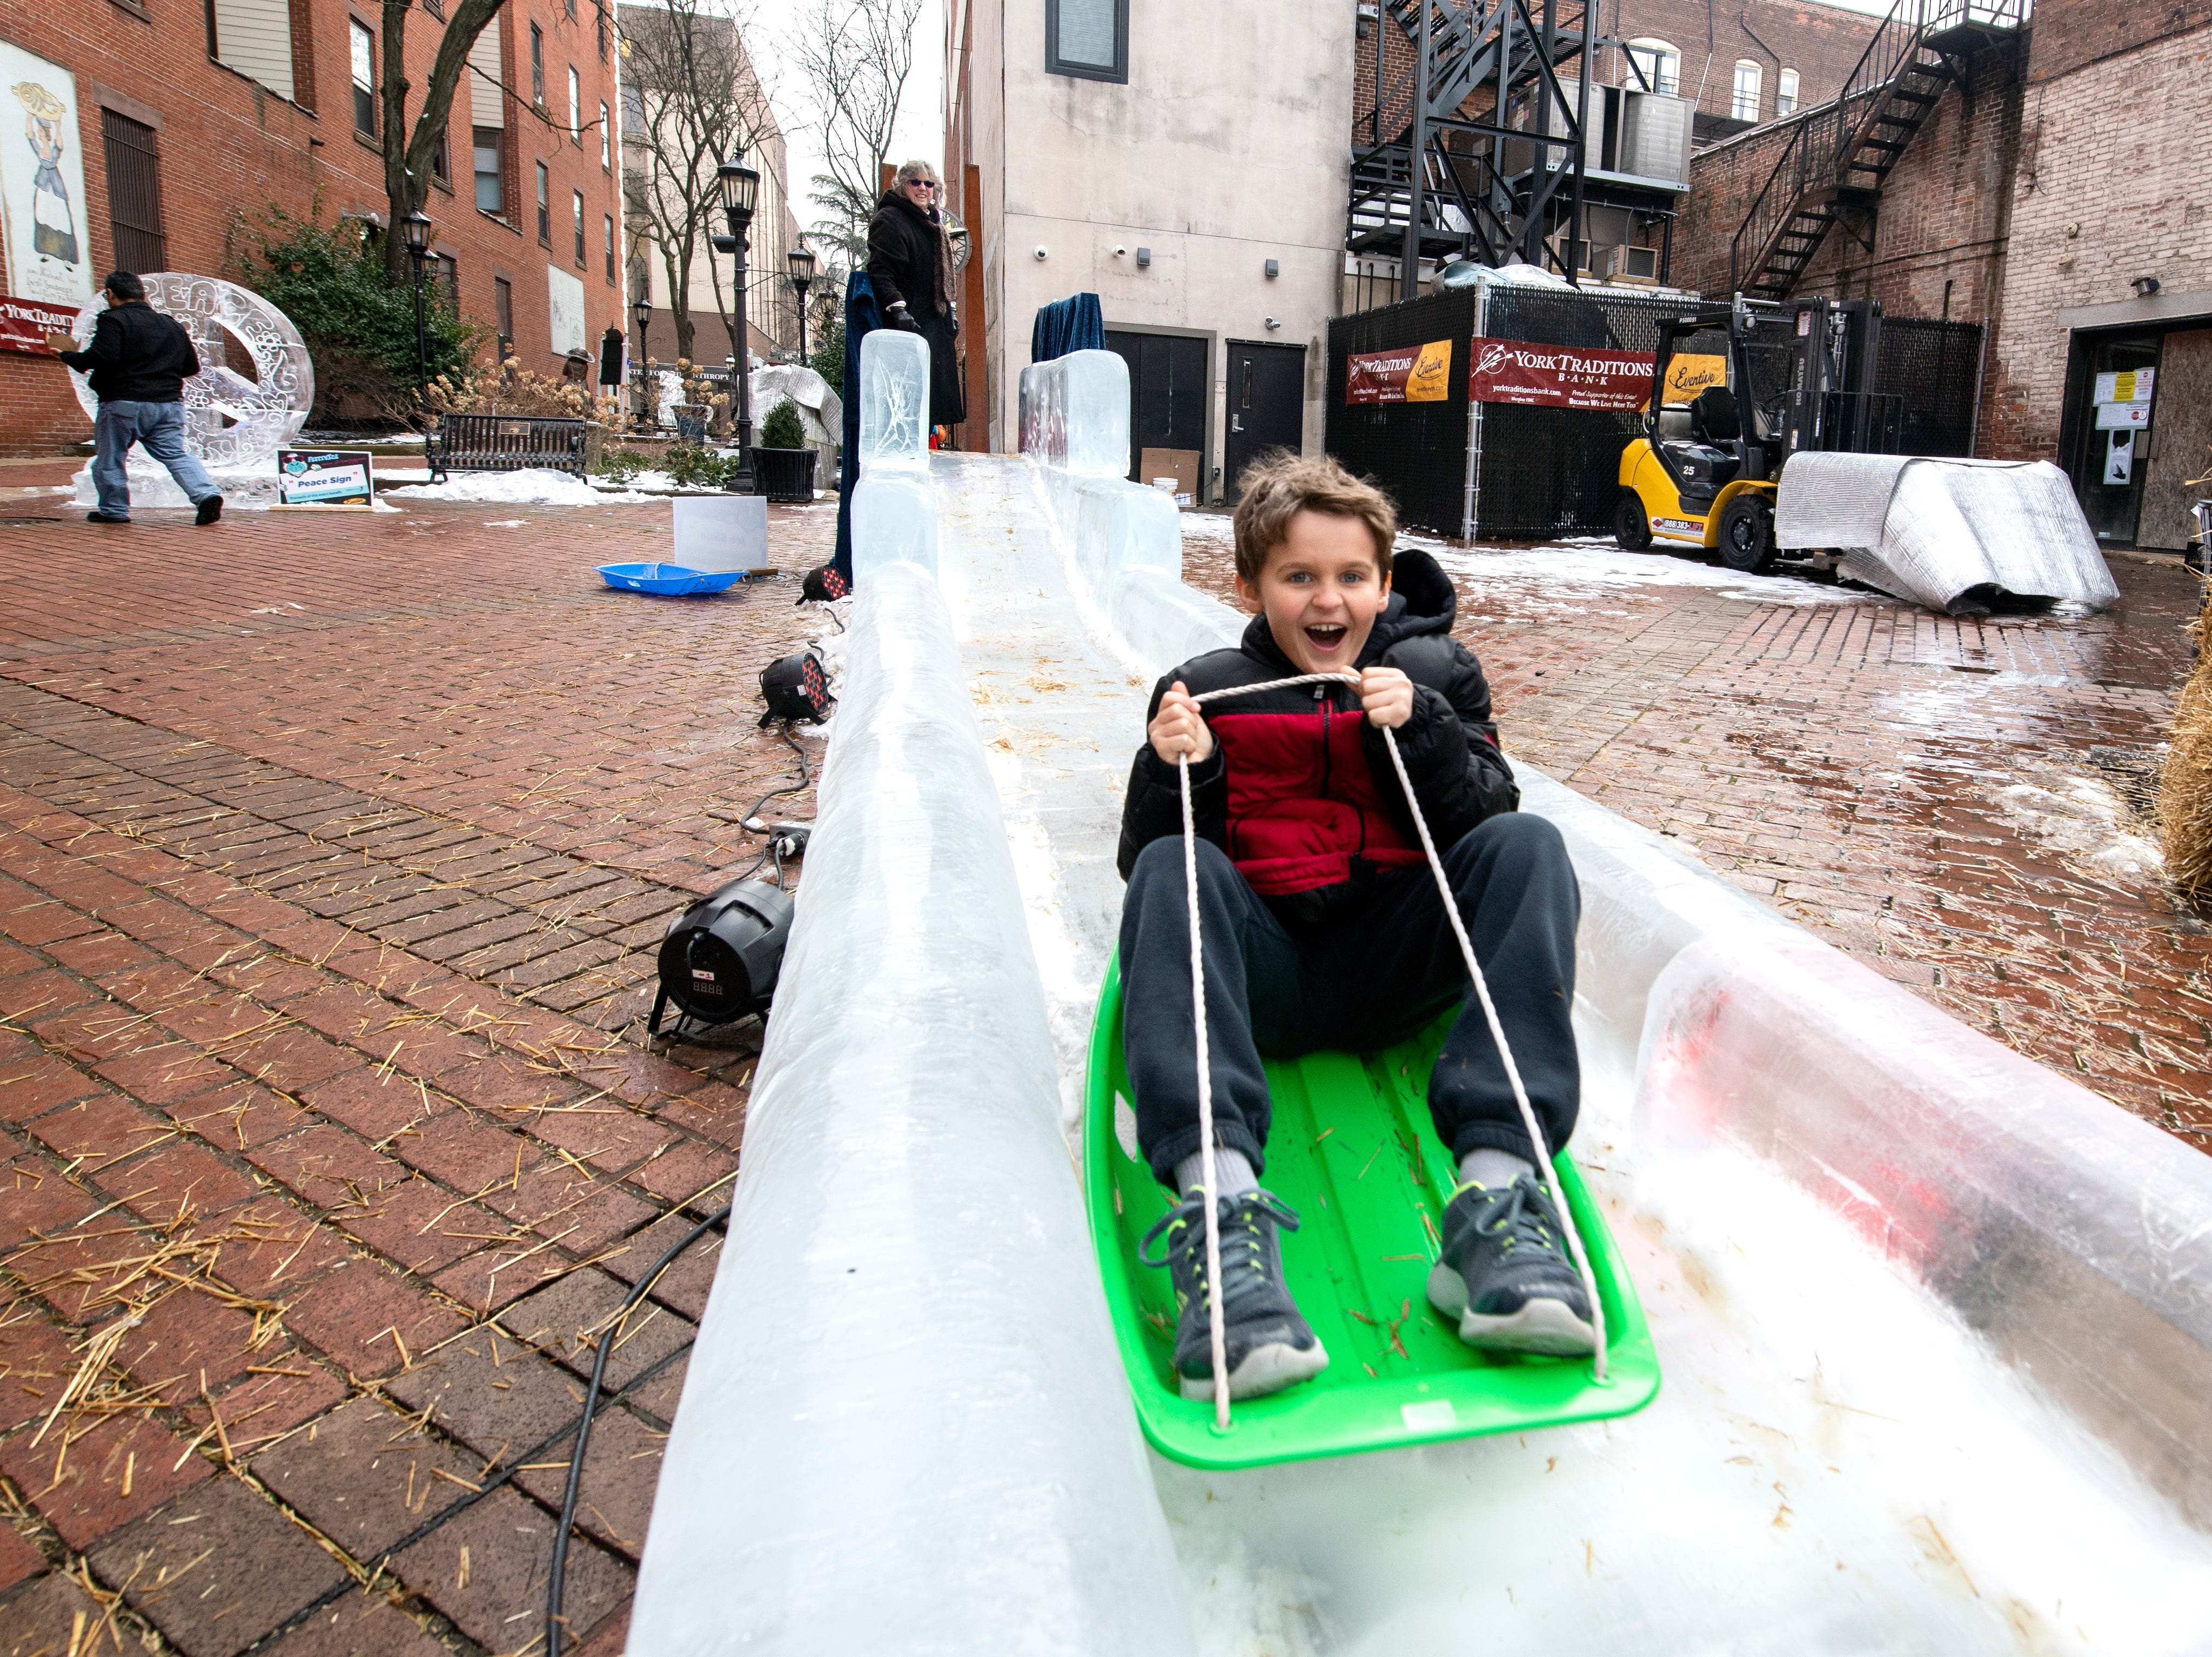 Ozzie Davidson, 7, of Hellam, rides down the ice slice in Cherry Lane, downtown, Friday, Jan. 18, 2019. The FestivICE ice festival has interactive ice sculptures, an ice slide and more. The three-day event ends Saturday.